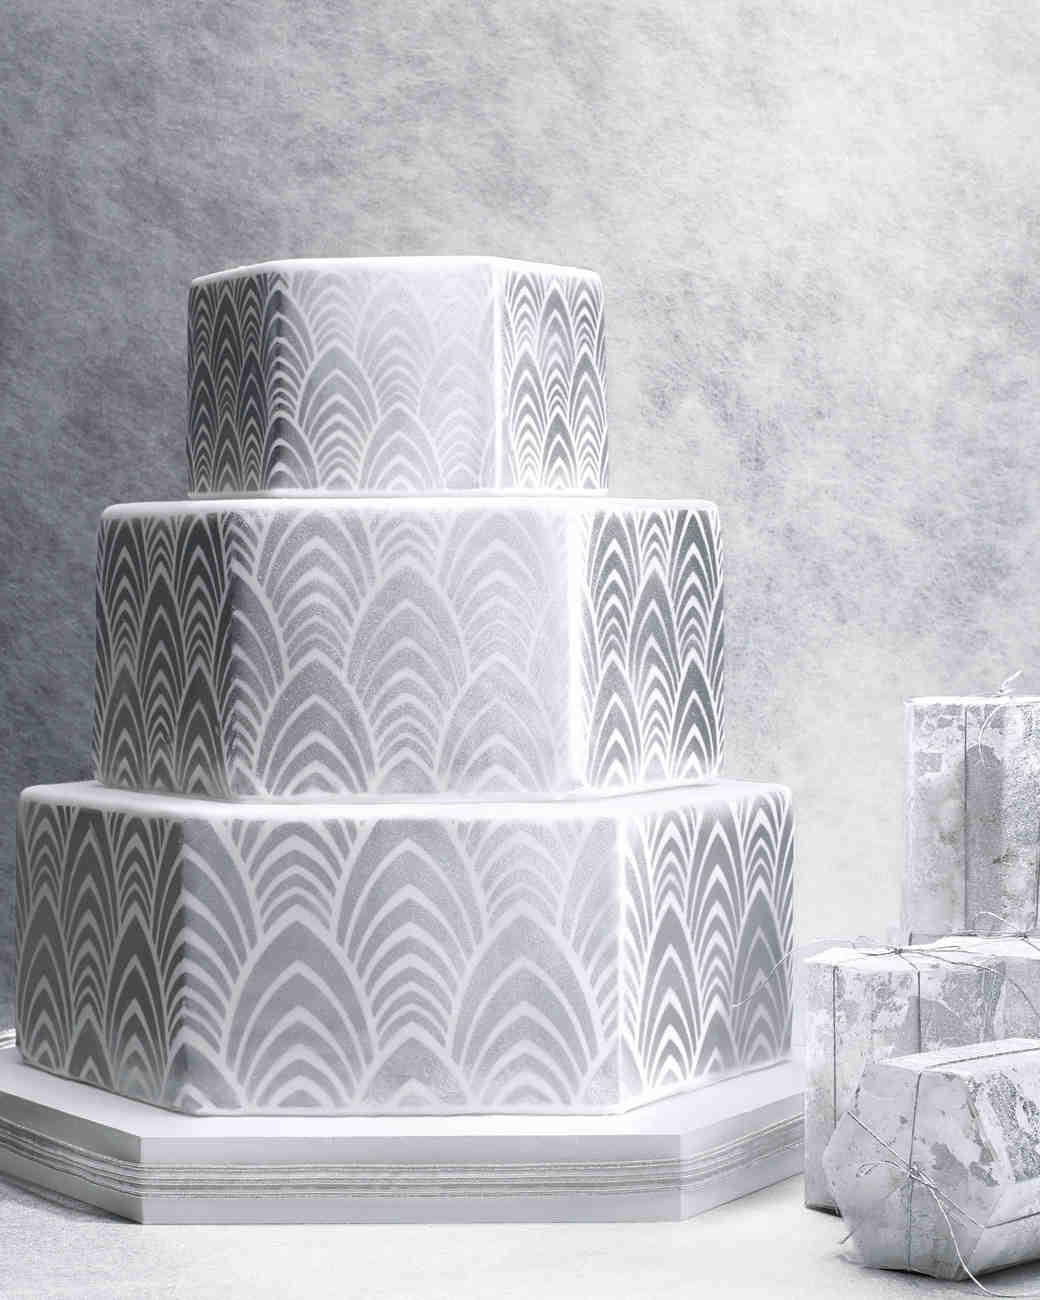 8 Platinum Wedding Cakes Ideas | Martha Stewart Weddings